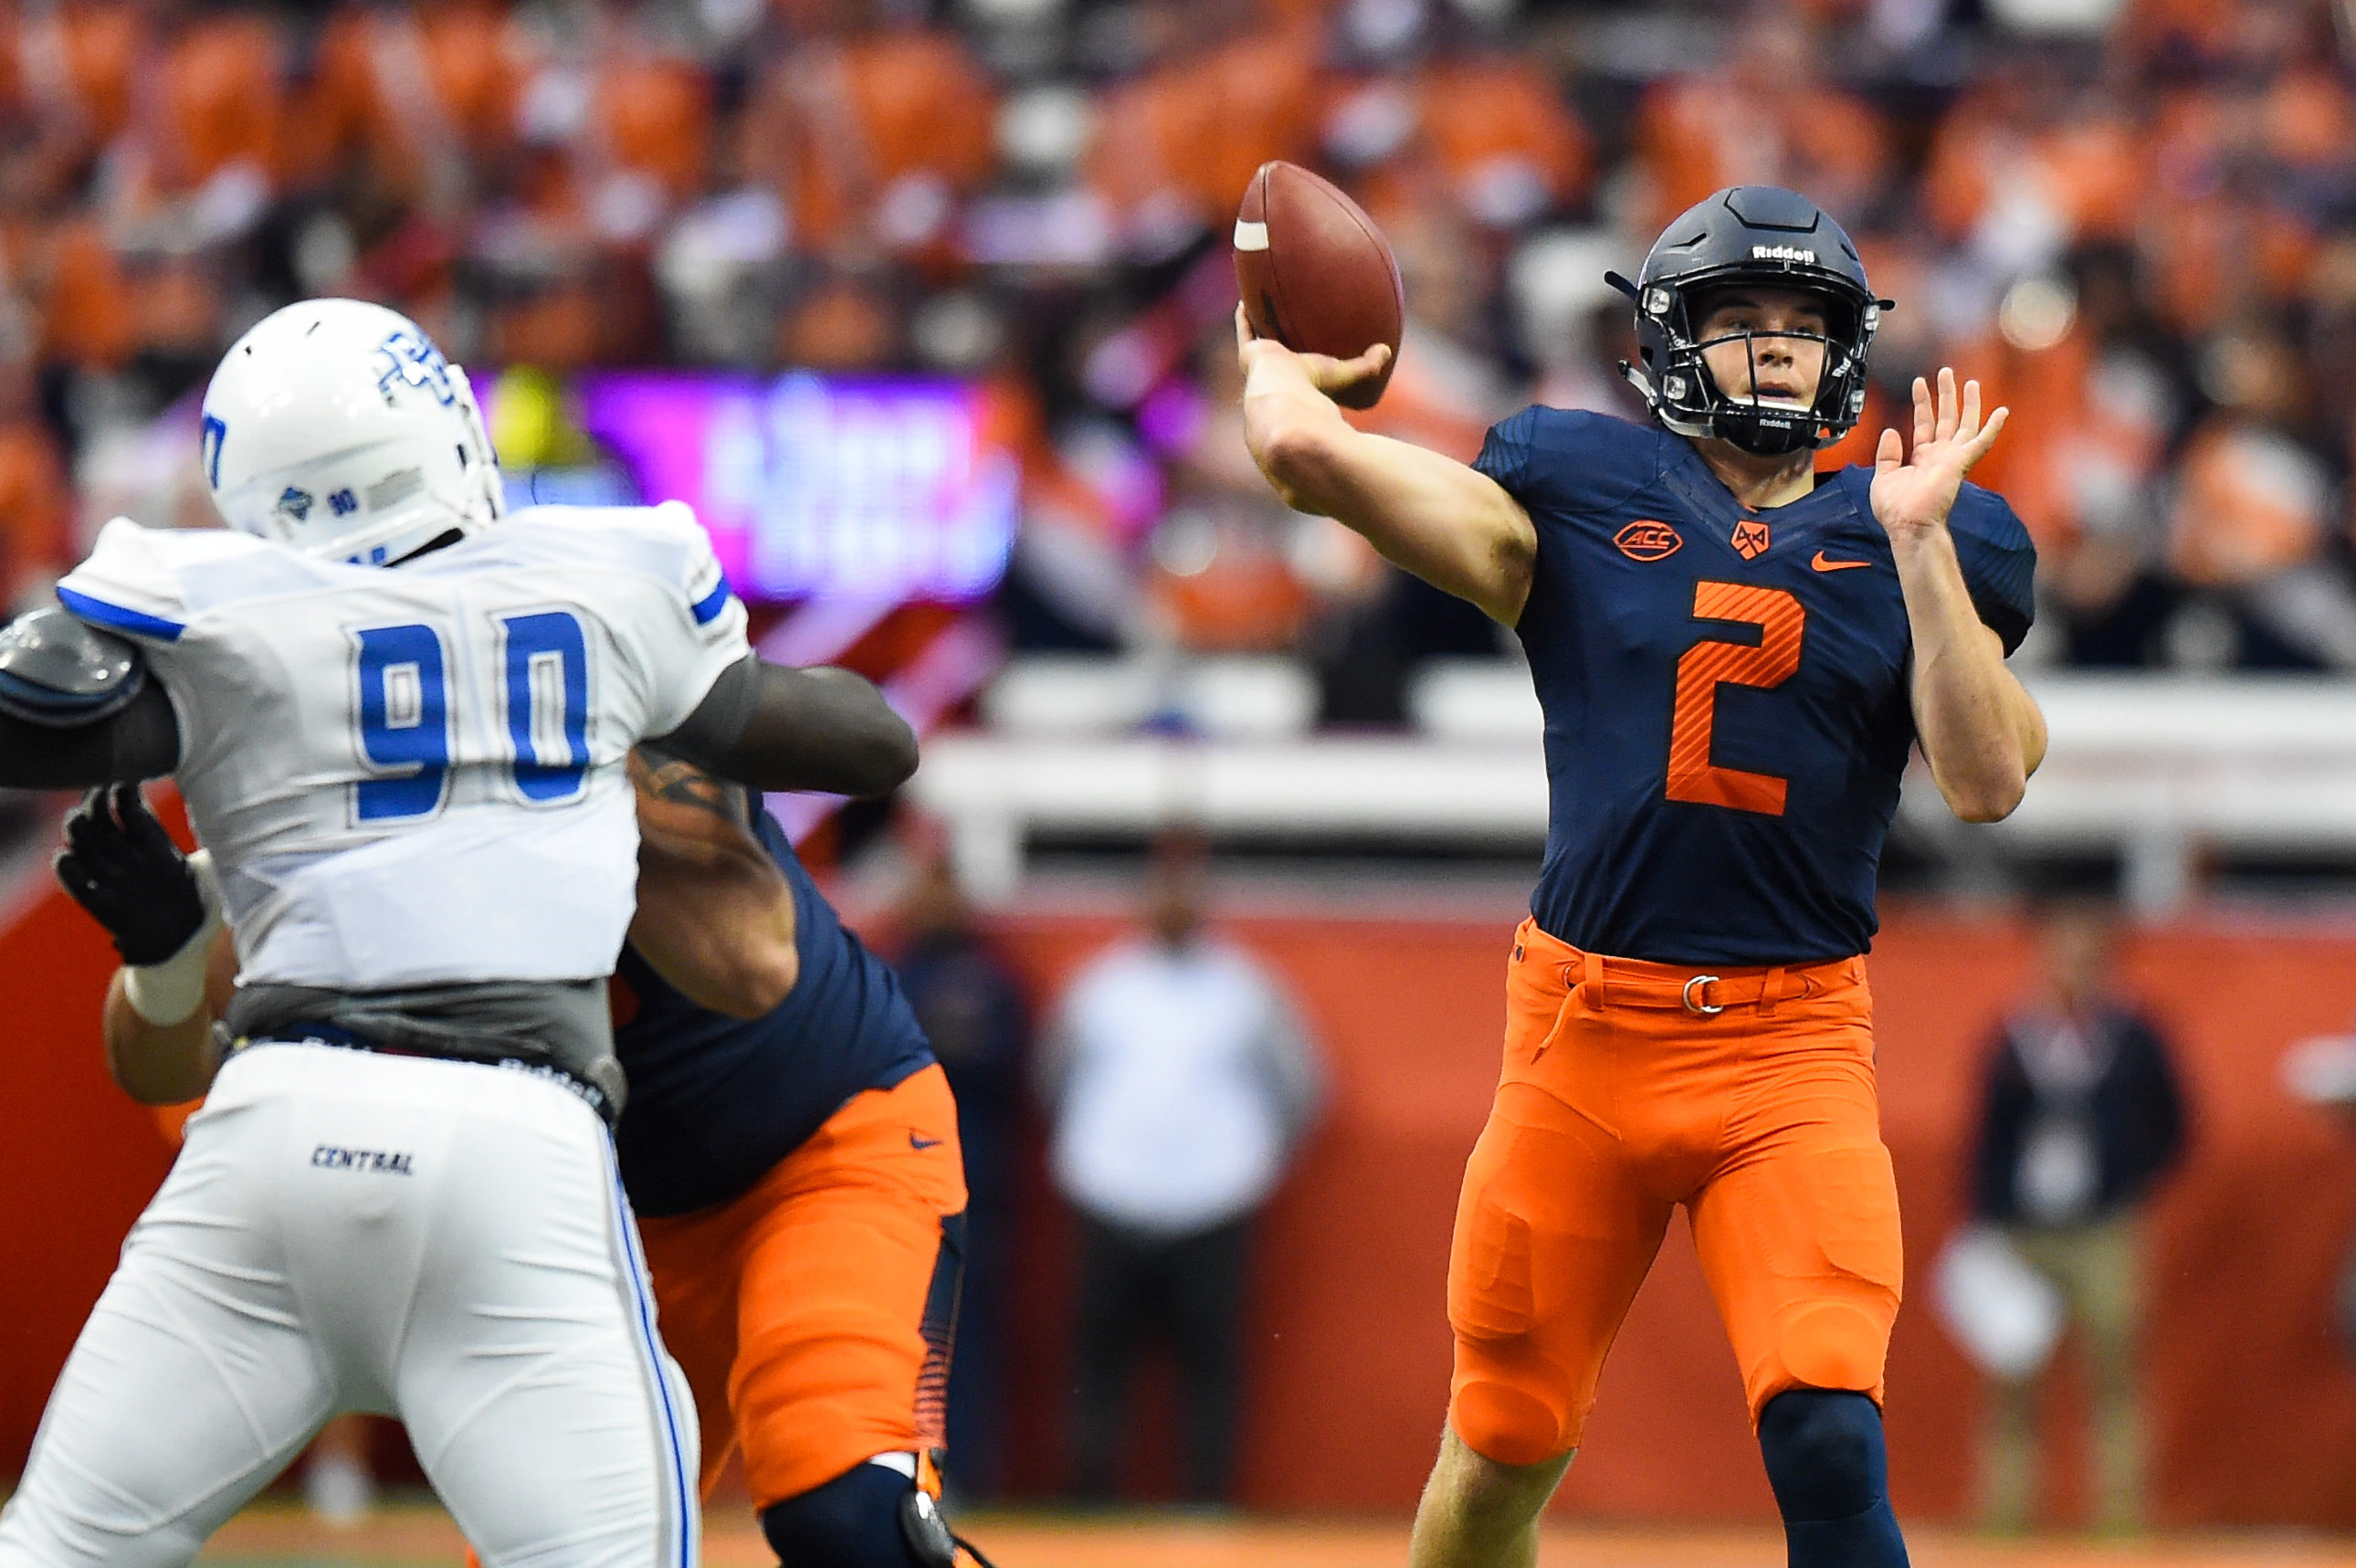 NCAA Football: Central Connecticut State at Syracuse